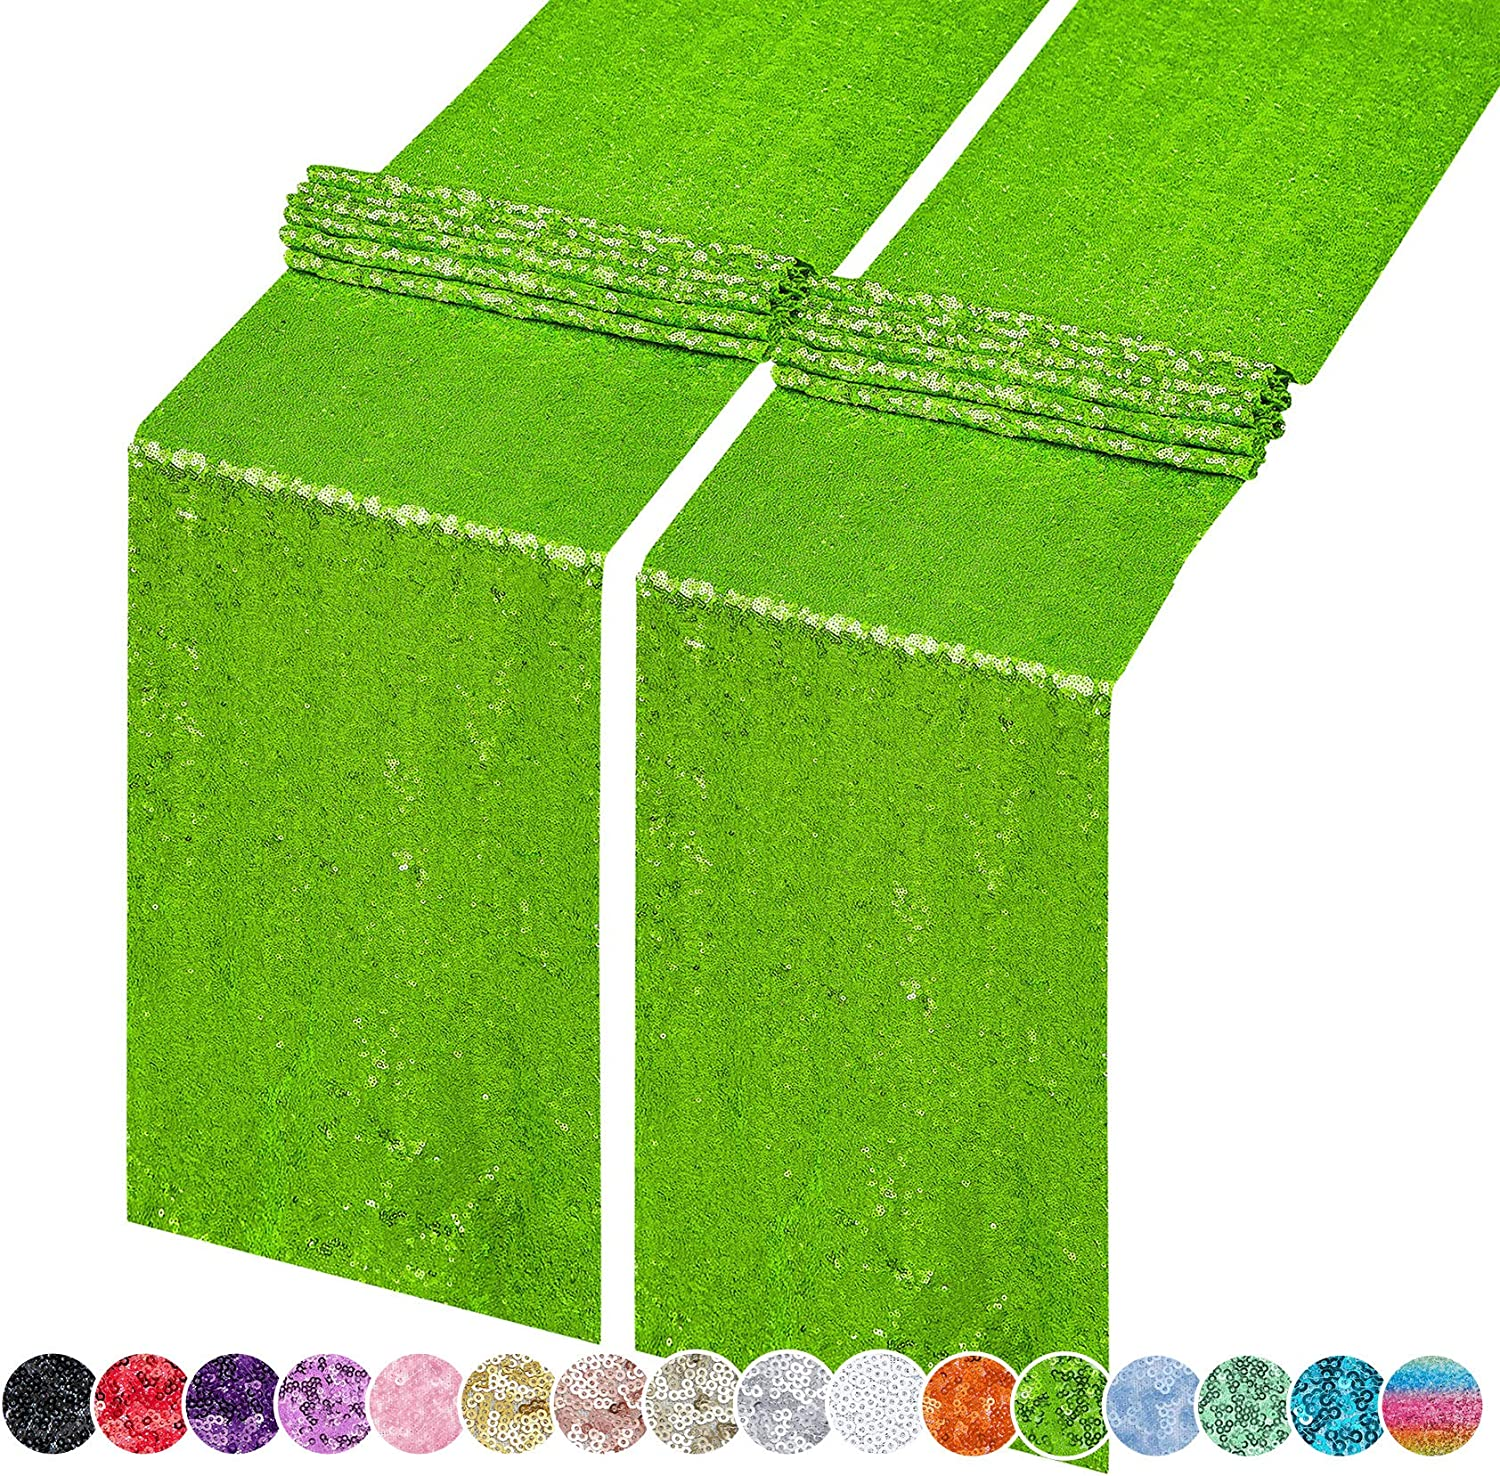 Hahuho 2PCS 12x108 Inch Sequin Table Runner Apple Green Glitter Table Runner for Party, Wedding, Bridal Baby Shower, Event Decorations(2PCS, 12x108 Inch, Apple Green)